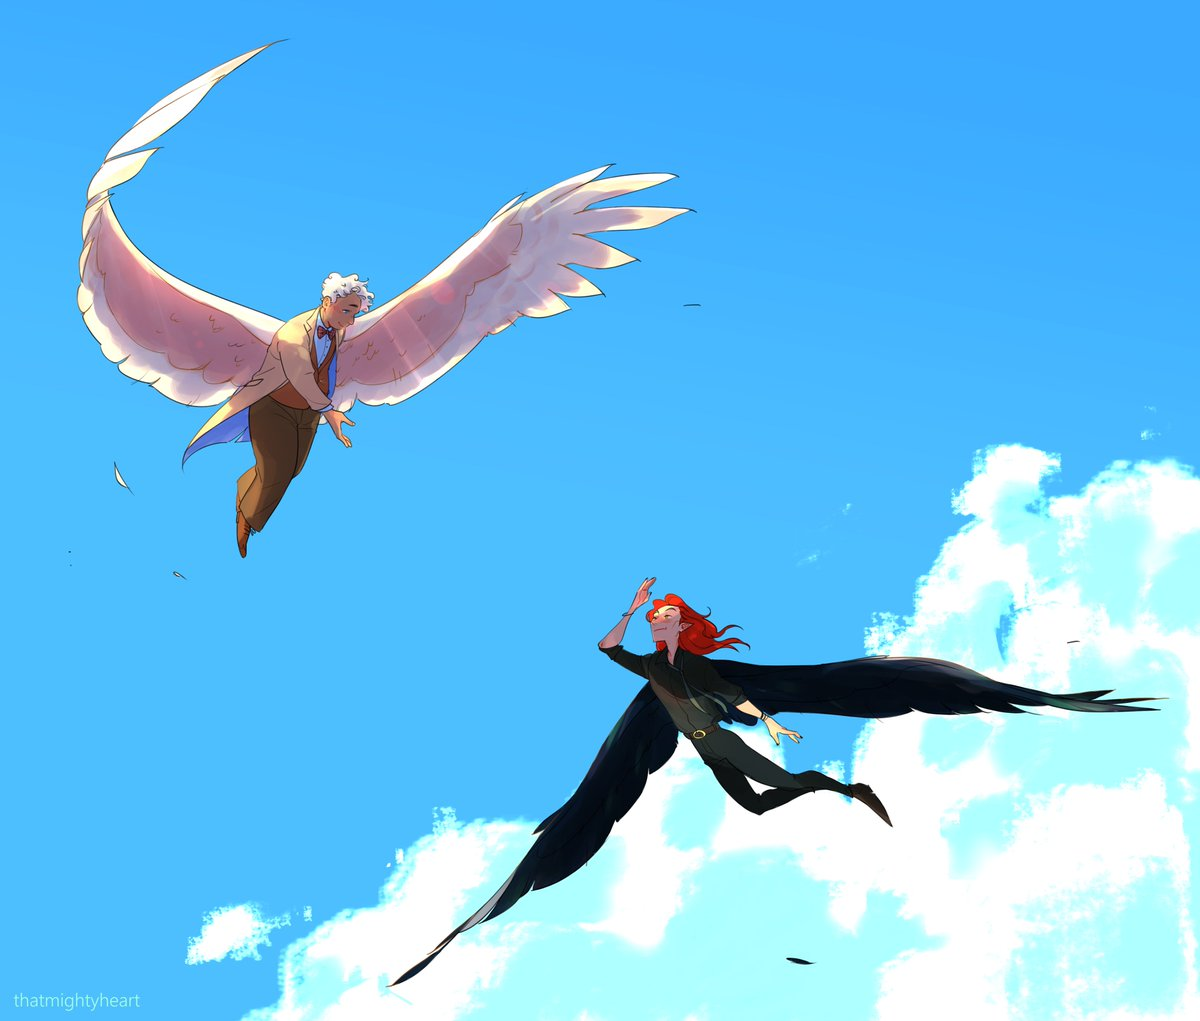 [good omens] birds of a feather <br>http://pic.twitter.com/7Qj7IfADyy